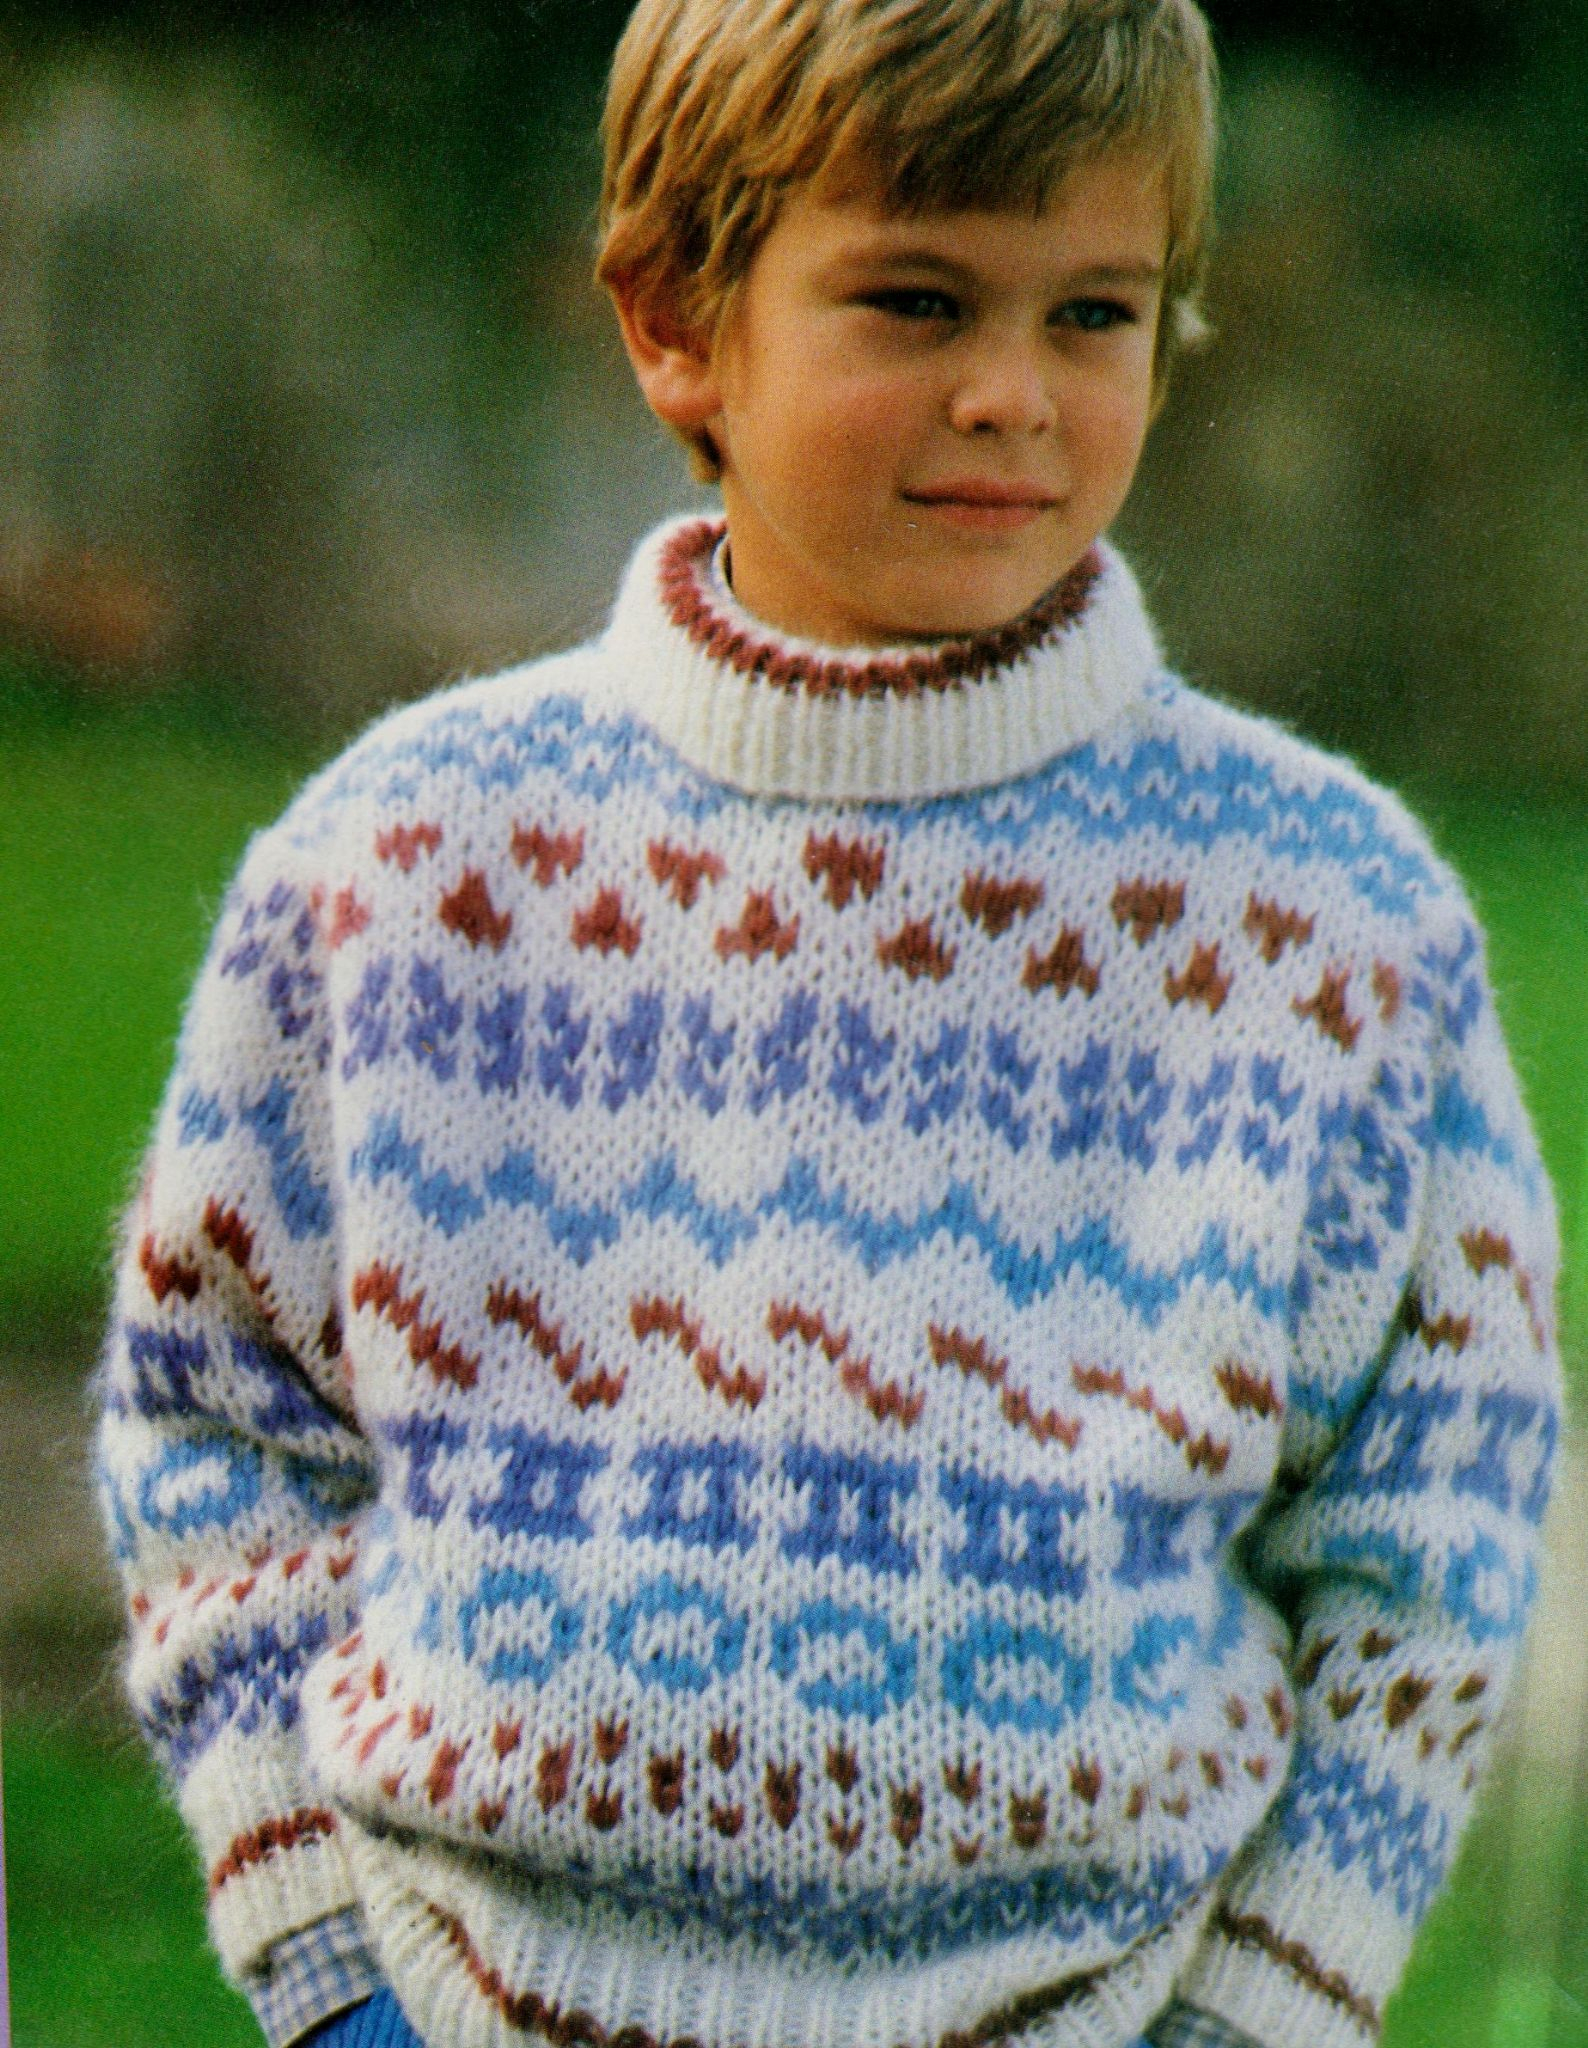 Easy Jumper Knitting Pattern Original Vintage Knitting Pattern Childs Easy Chunky Fair Isle Sweater Jumper Chest 24 30